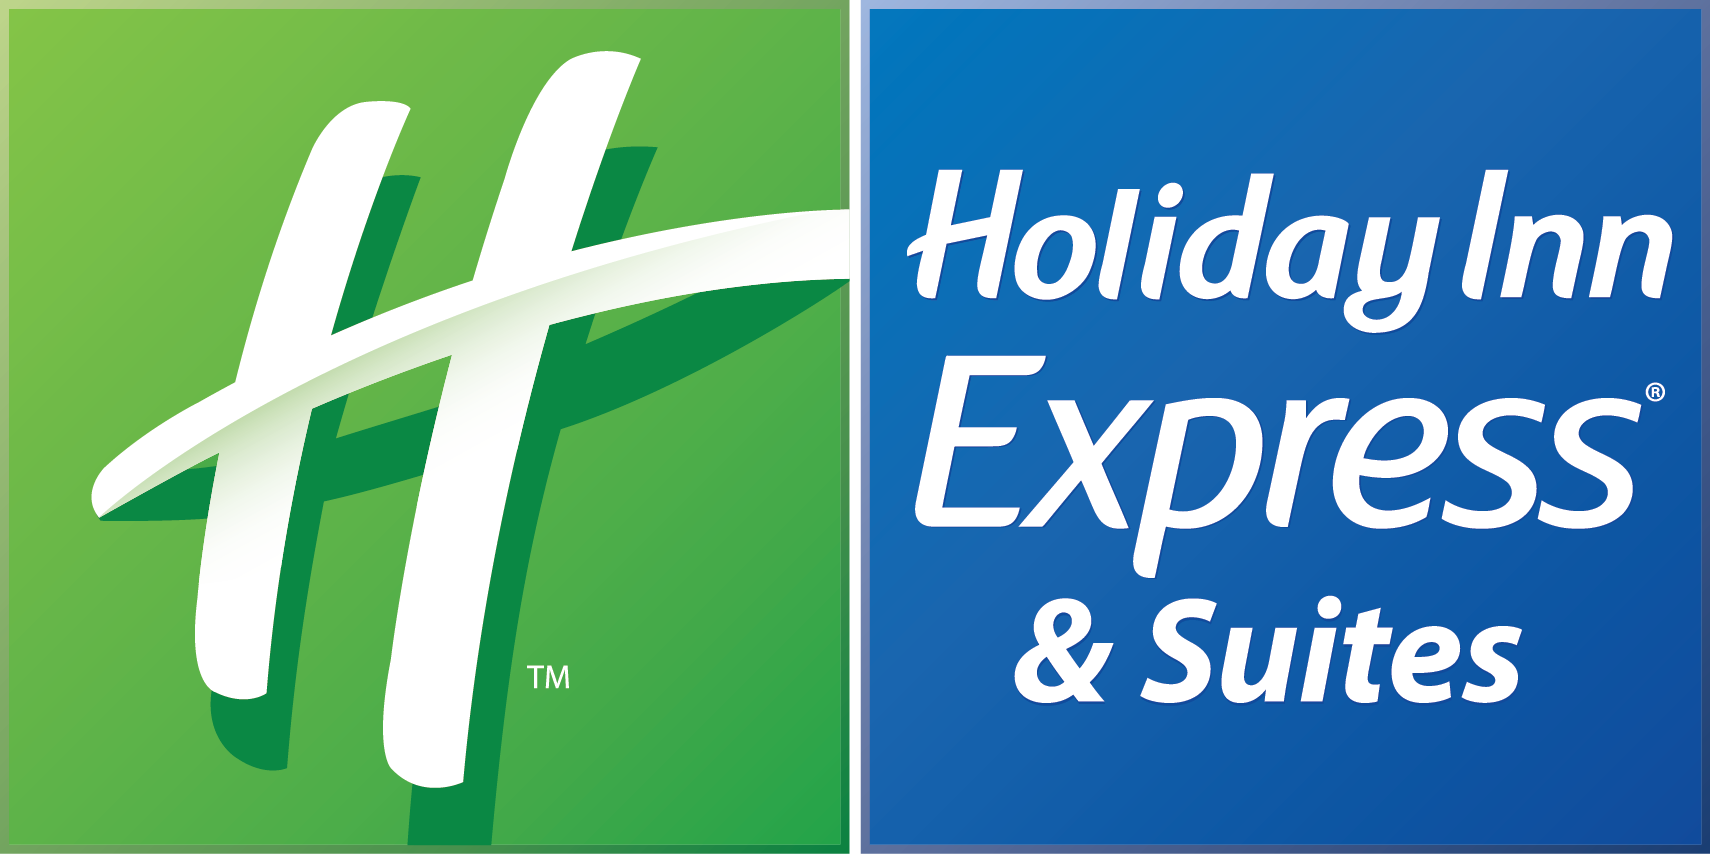 Holiday Inn Express & Suites, South Portland